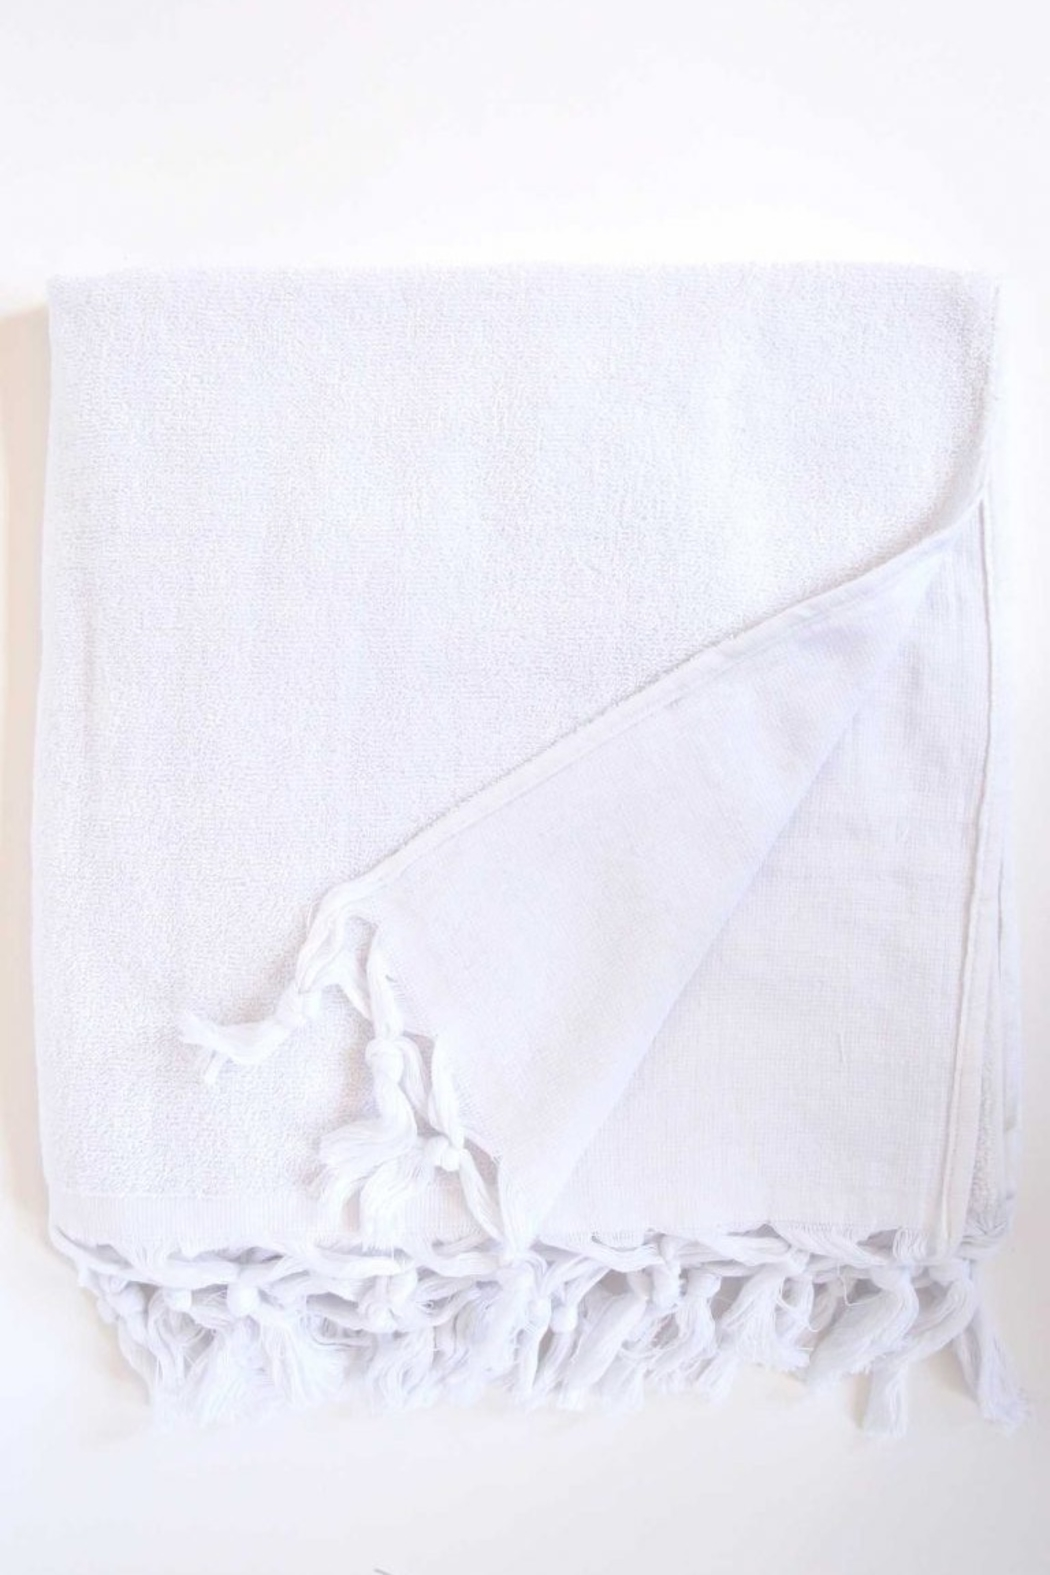 The Birds Nest FOUTA BODY TOWEL - LIGHT TERRY CANVAS (WHITE) - Main Image